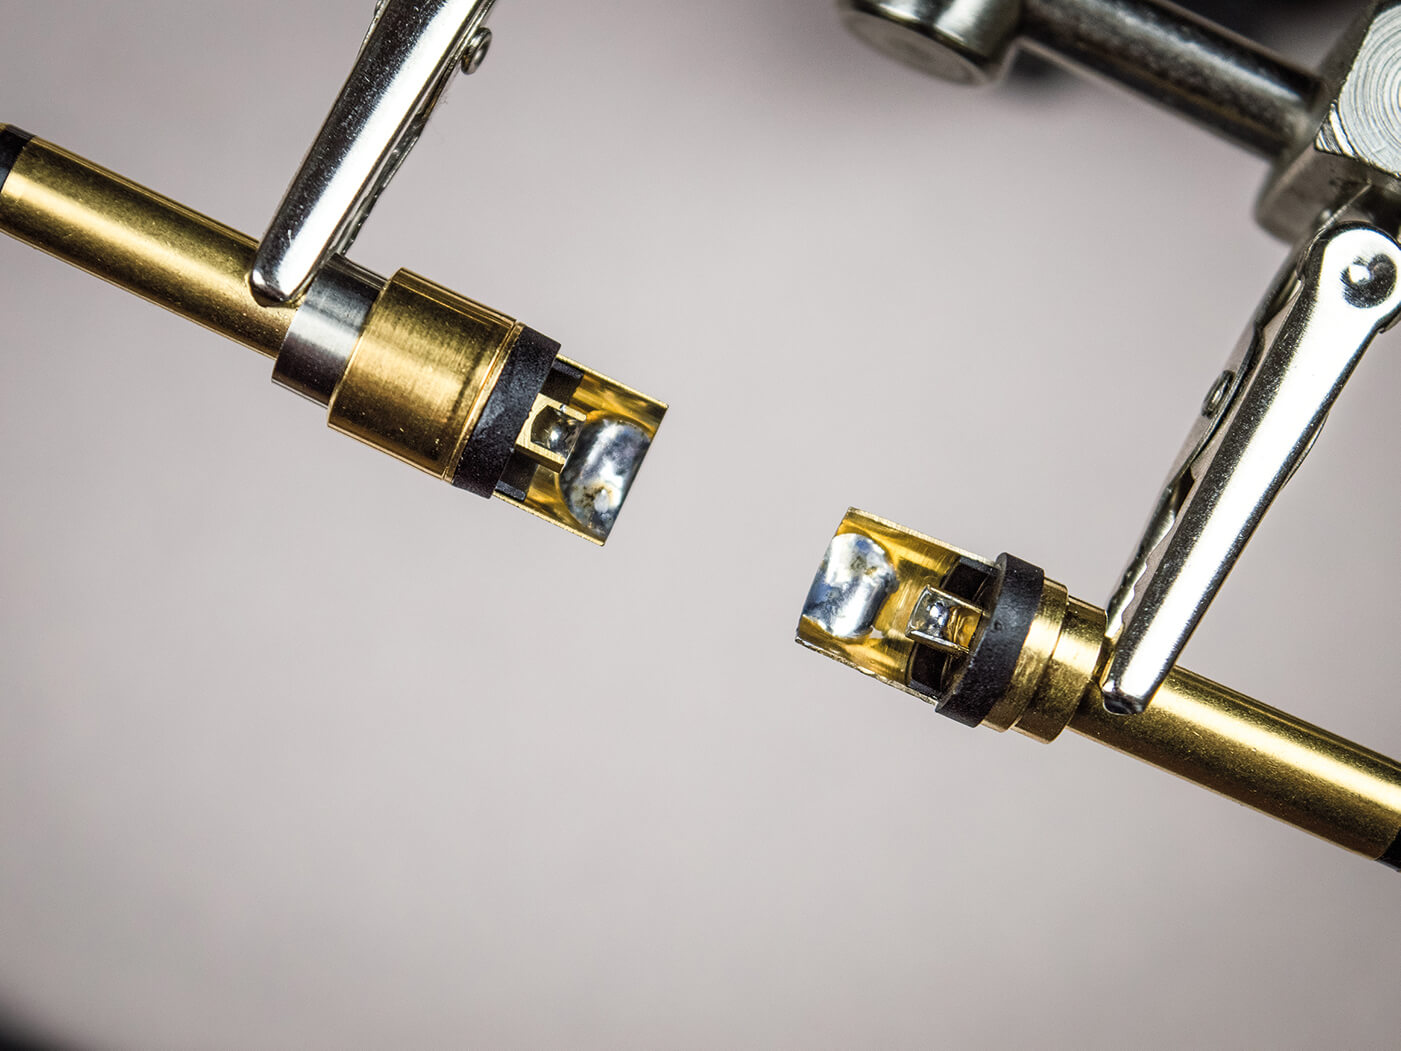 DIY Complete Guide to Soldering Tinned Plugs